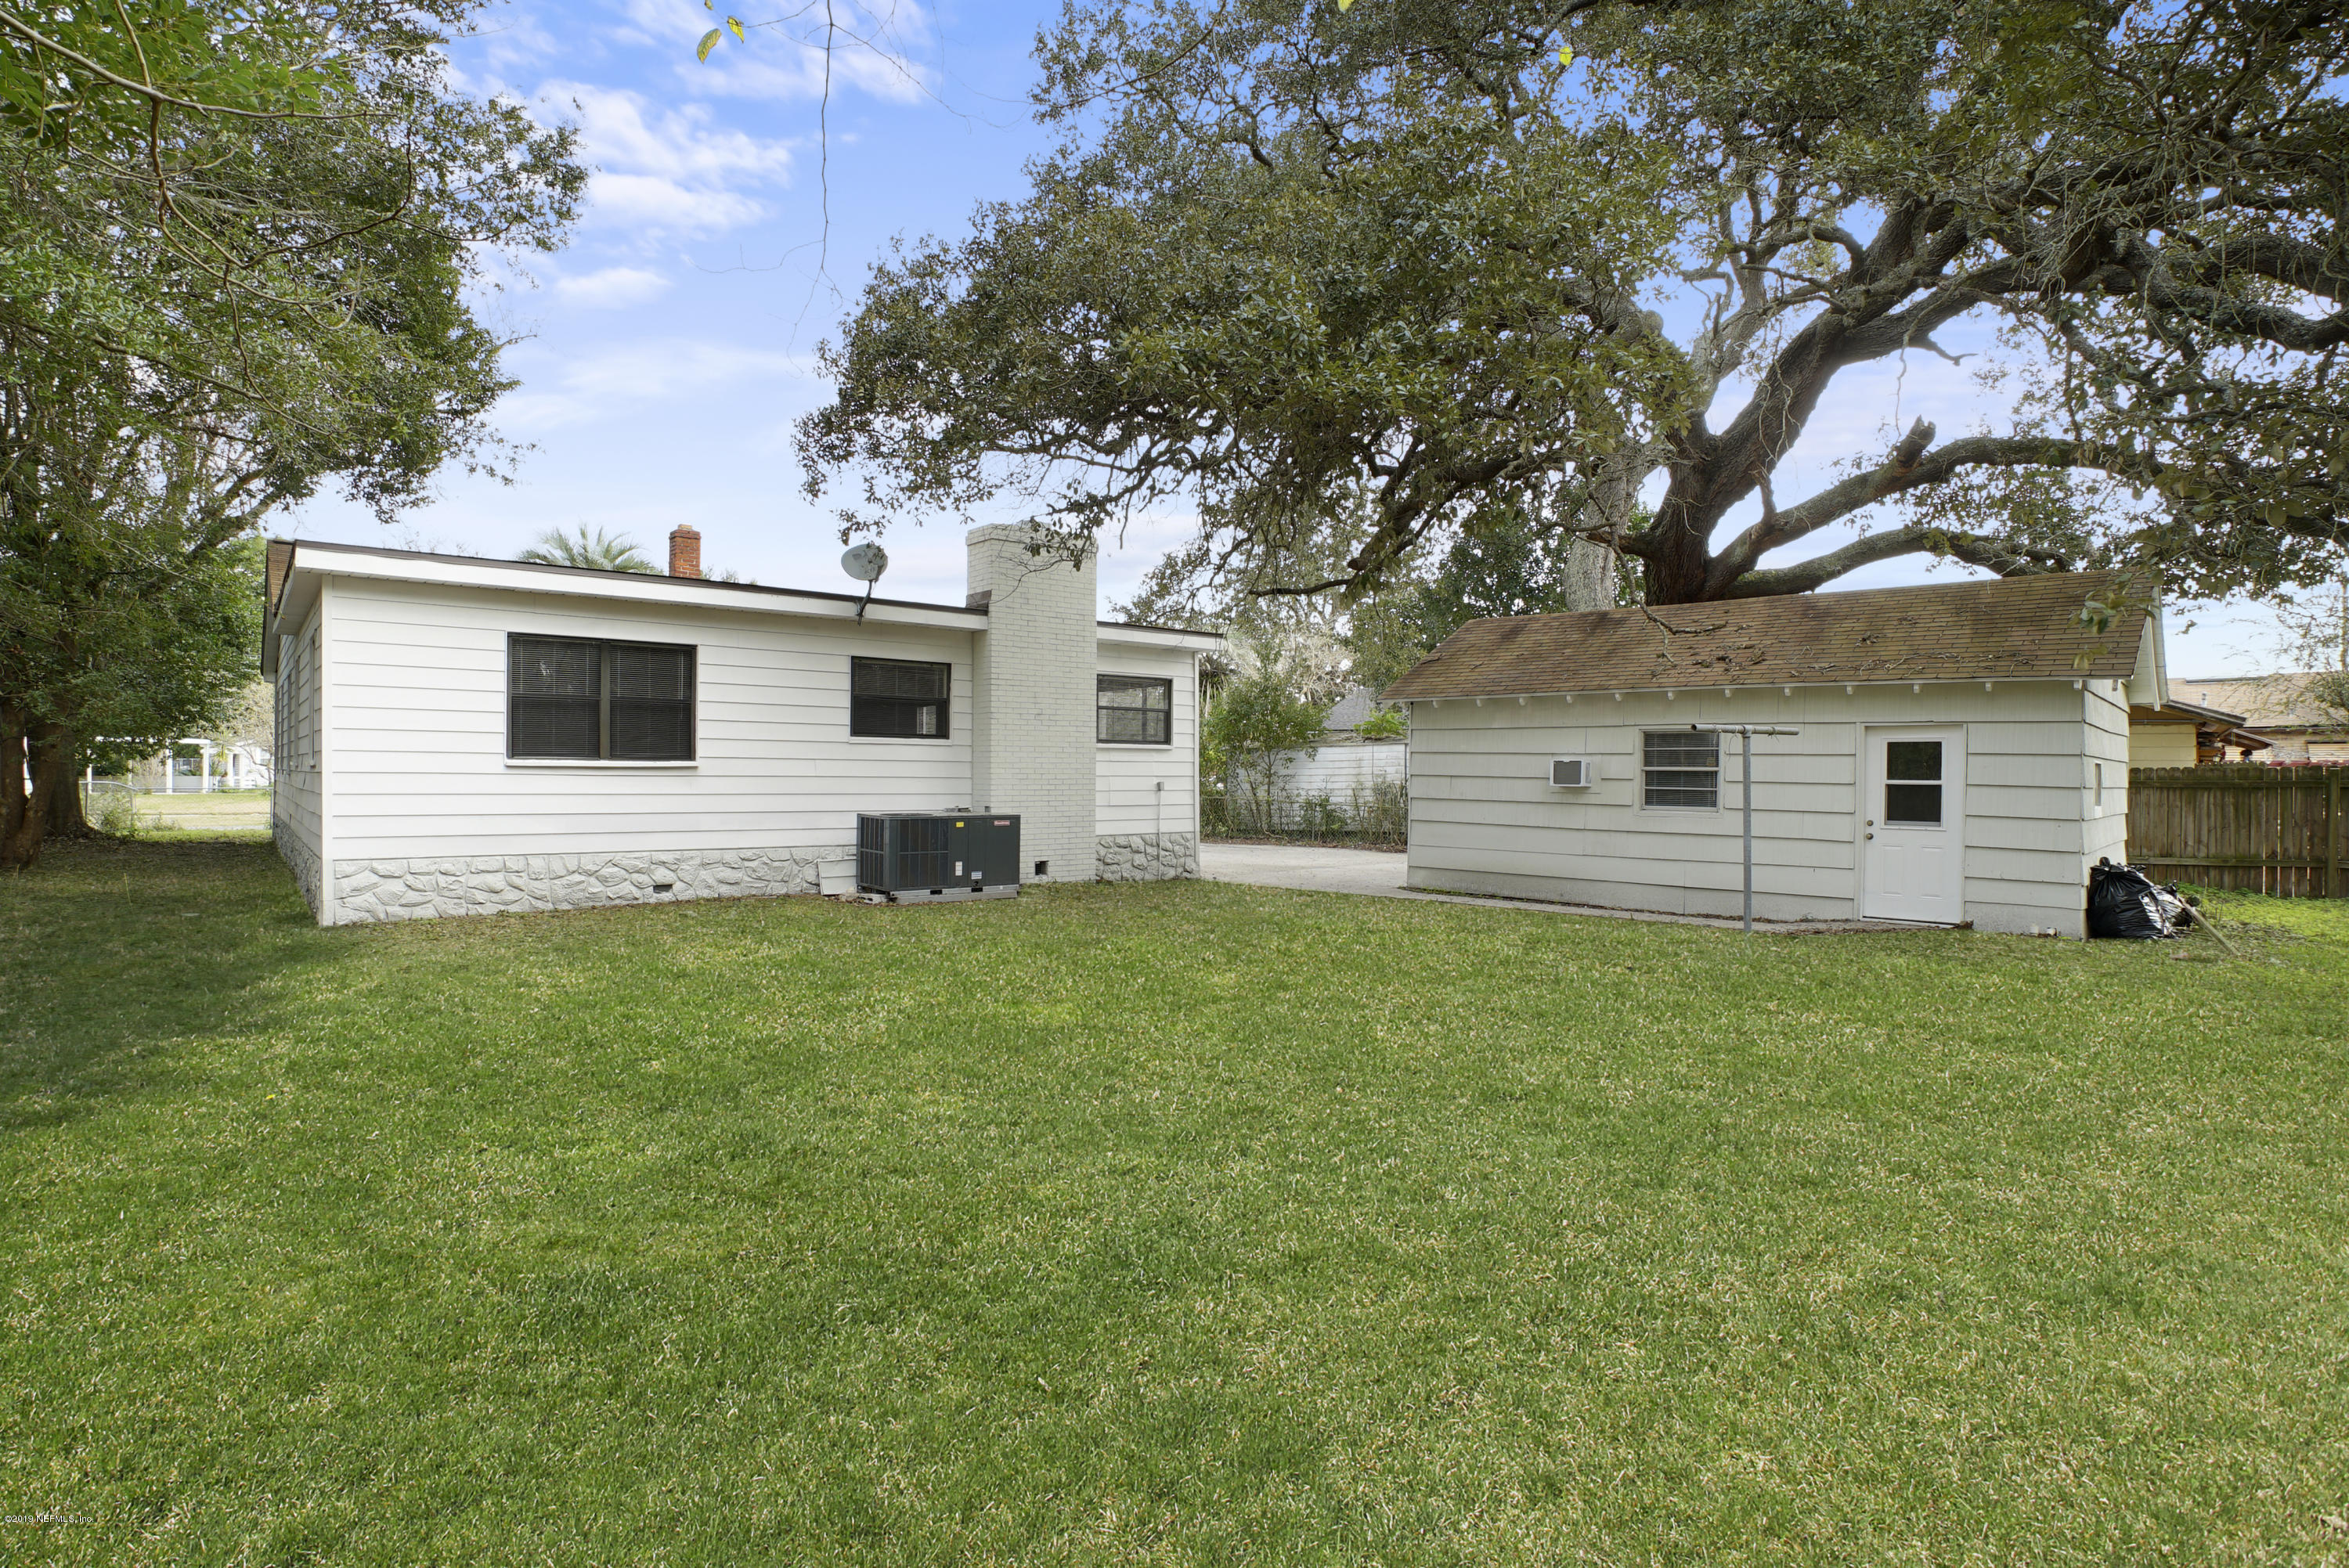 4714 DUNDEE, JACKSONVILLE, FLORIDA 32210, 4 Bedrooms Bedrooms, ,2 BathroomsBathrooms,Residential - single family,For sale,DUNDEE,974987